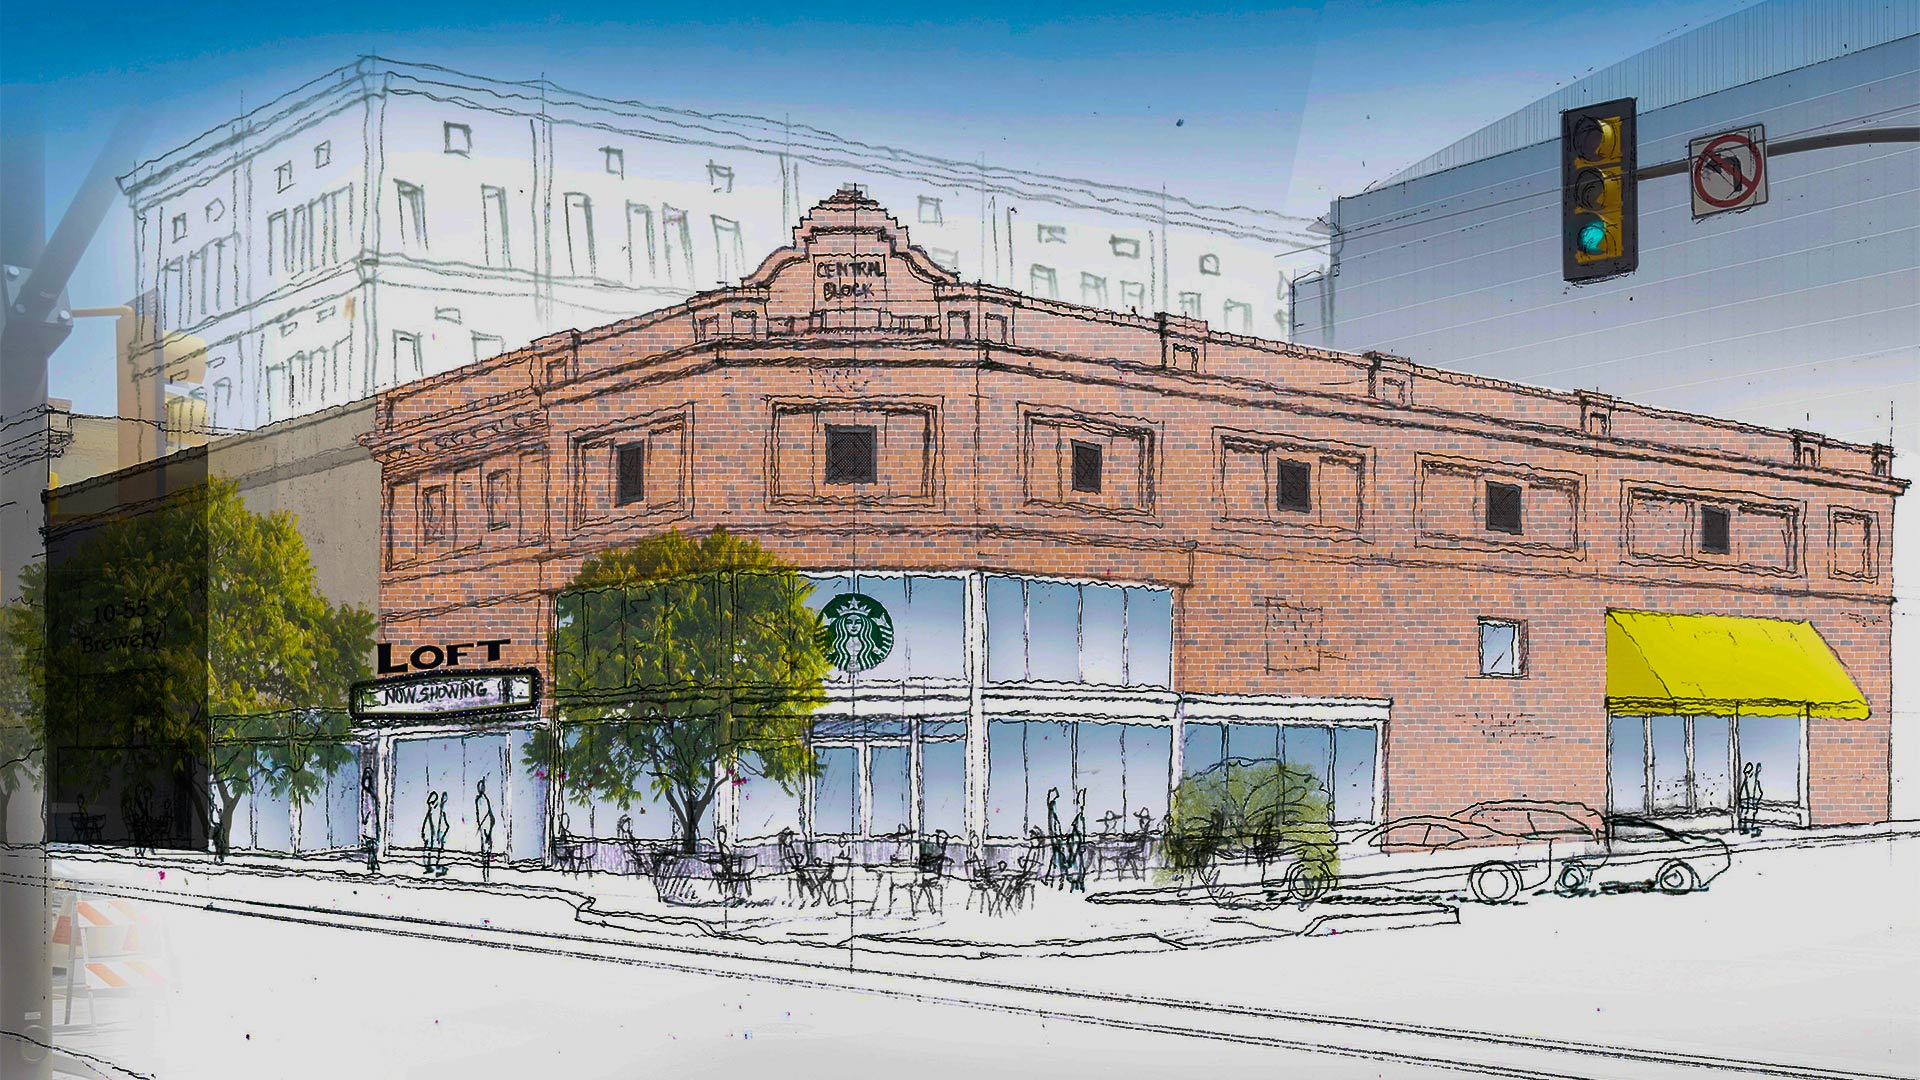 An illustration of possible changes coming to the building that housed Wig-O-Rama.